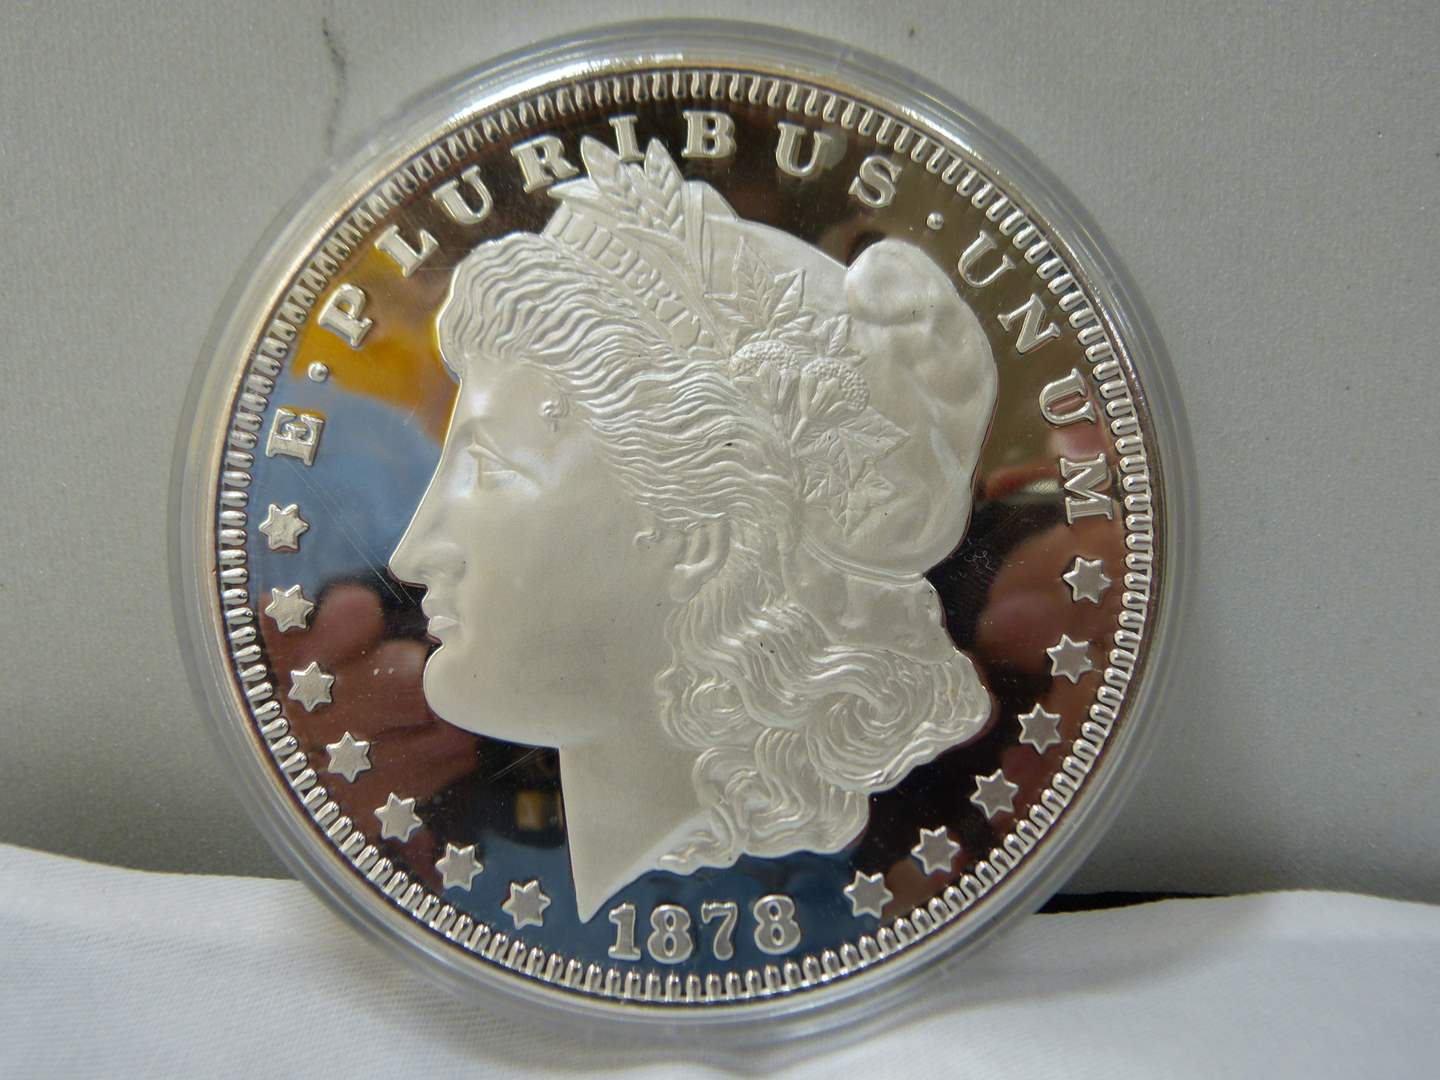 Lot # 151  WOW Limited Edition #00309 1/2 POUND PURE SILVER Morgan (YES HALF POUND)